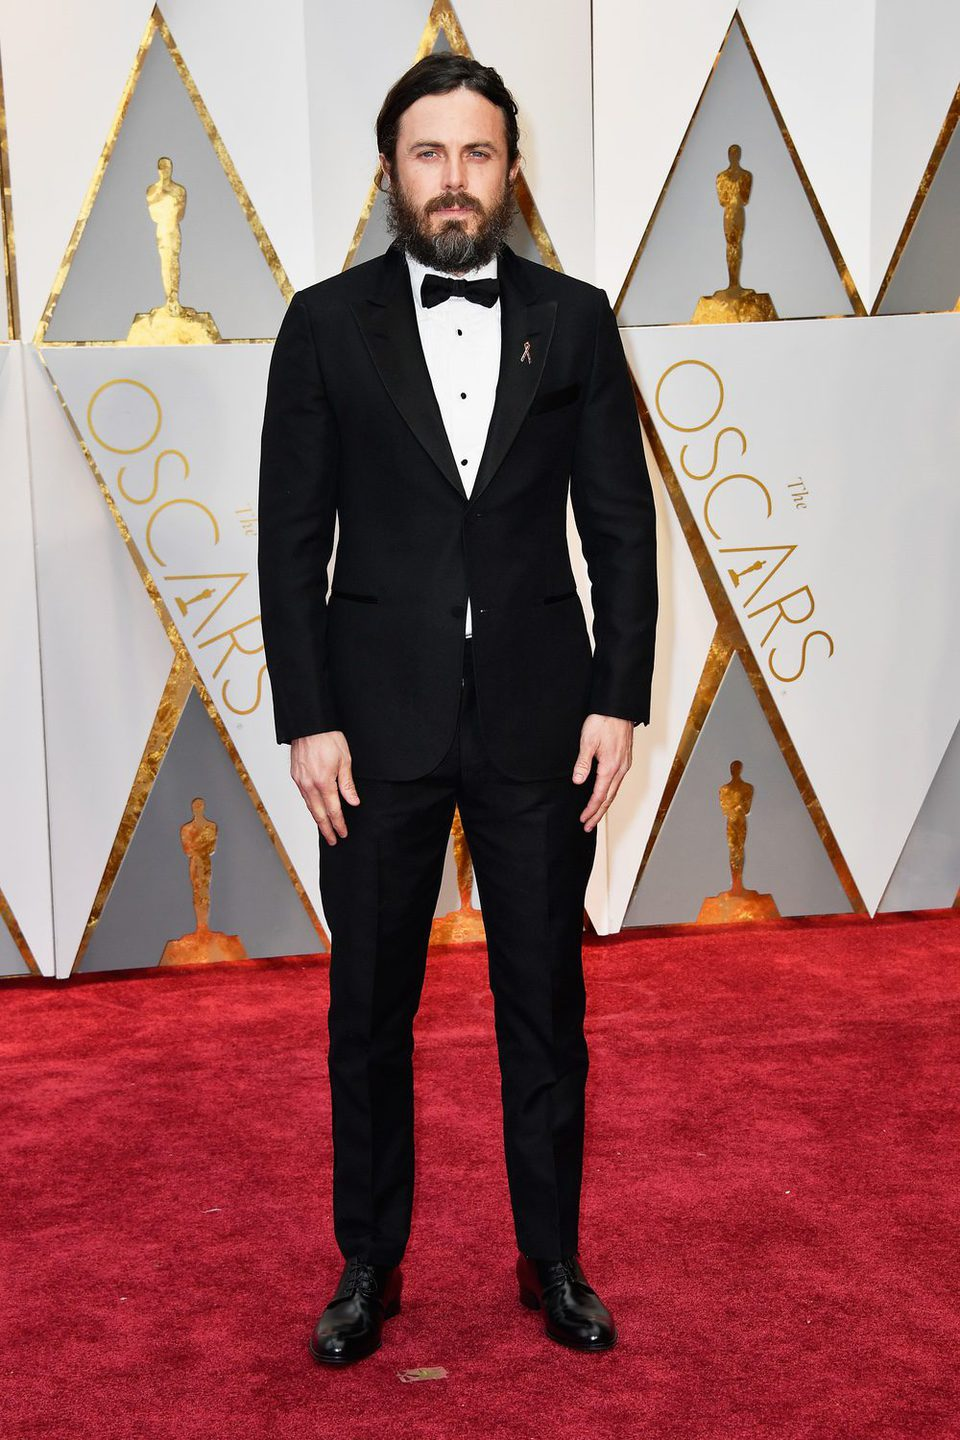 Casey Affleck at the red carpet of the Oscars 2017